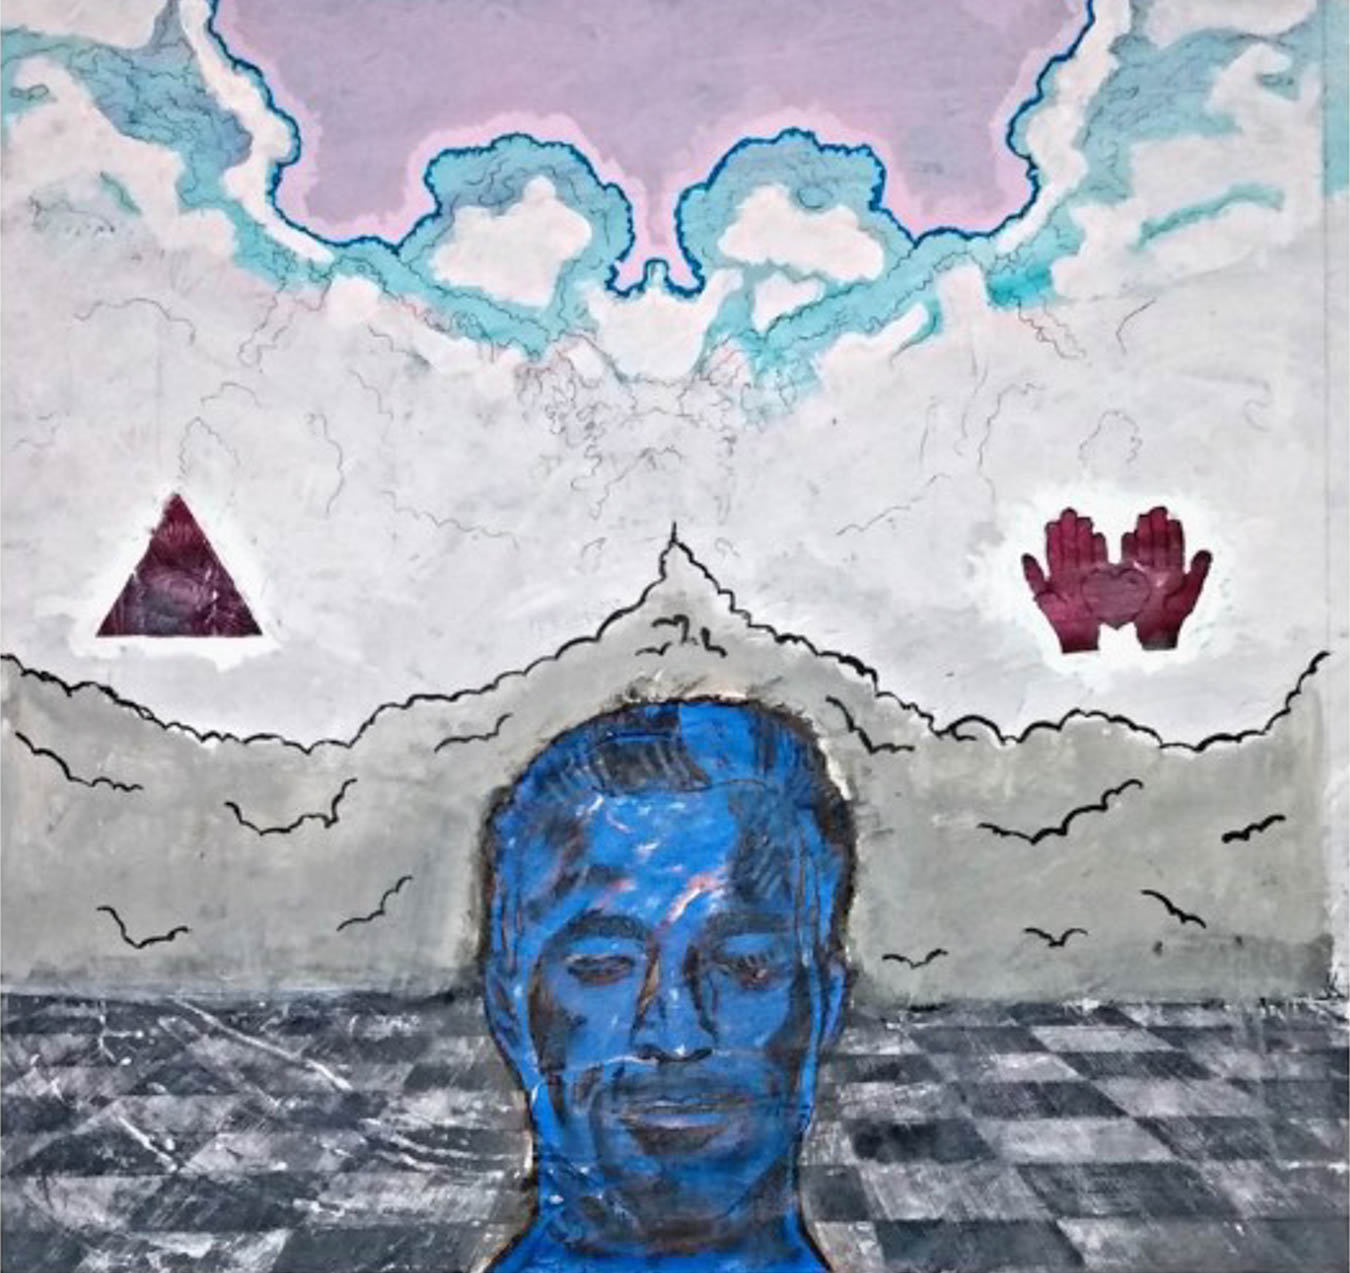 Illustration of man's face in blue in foreground, with abstract shapes in the background.